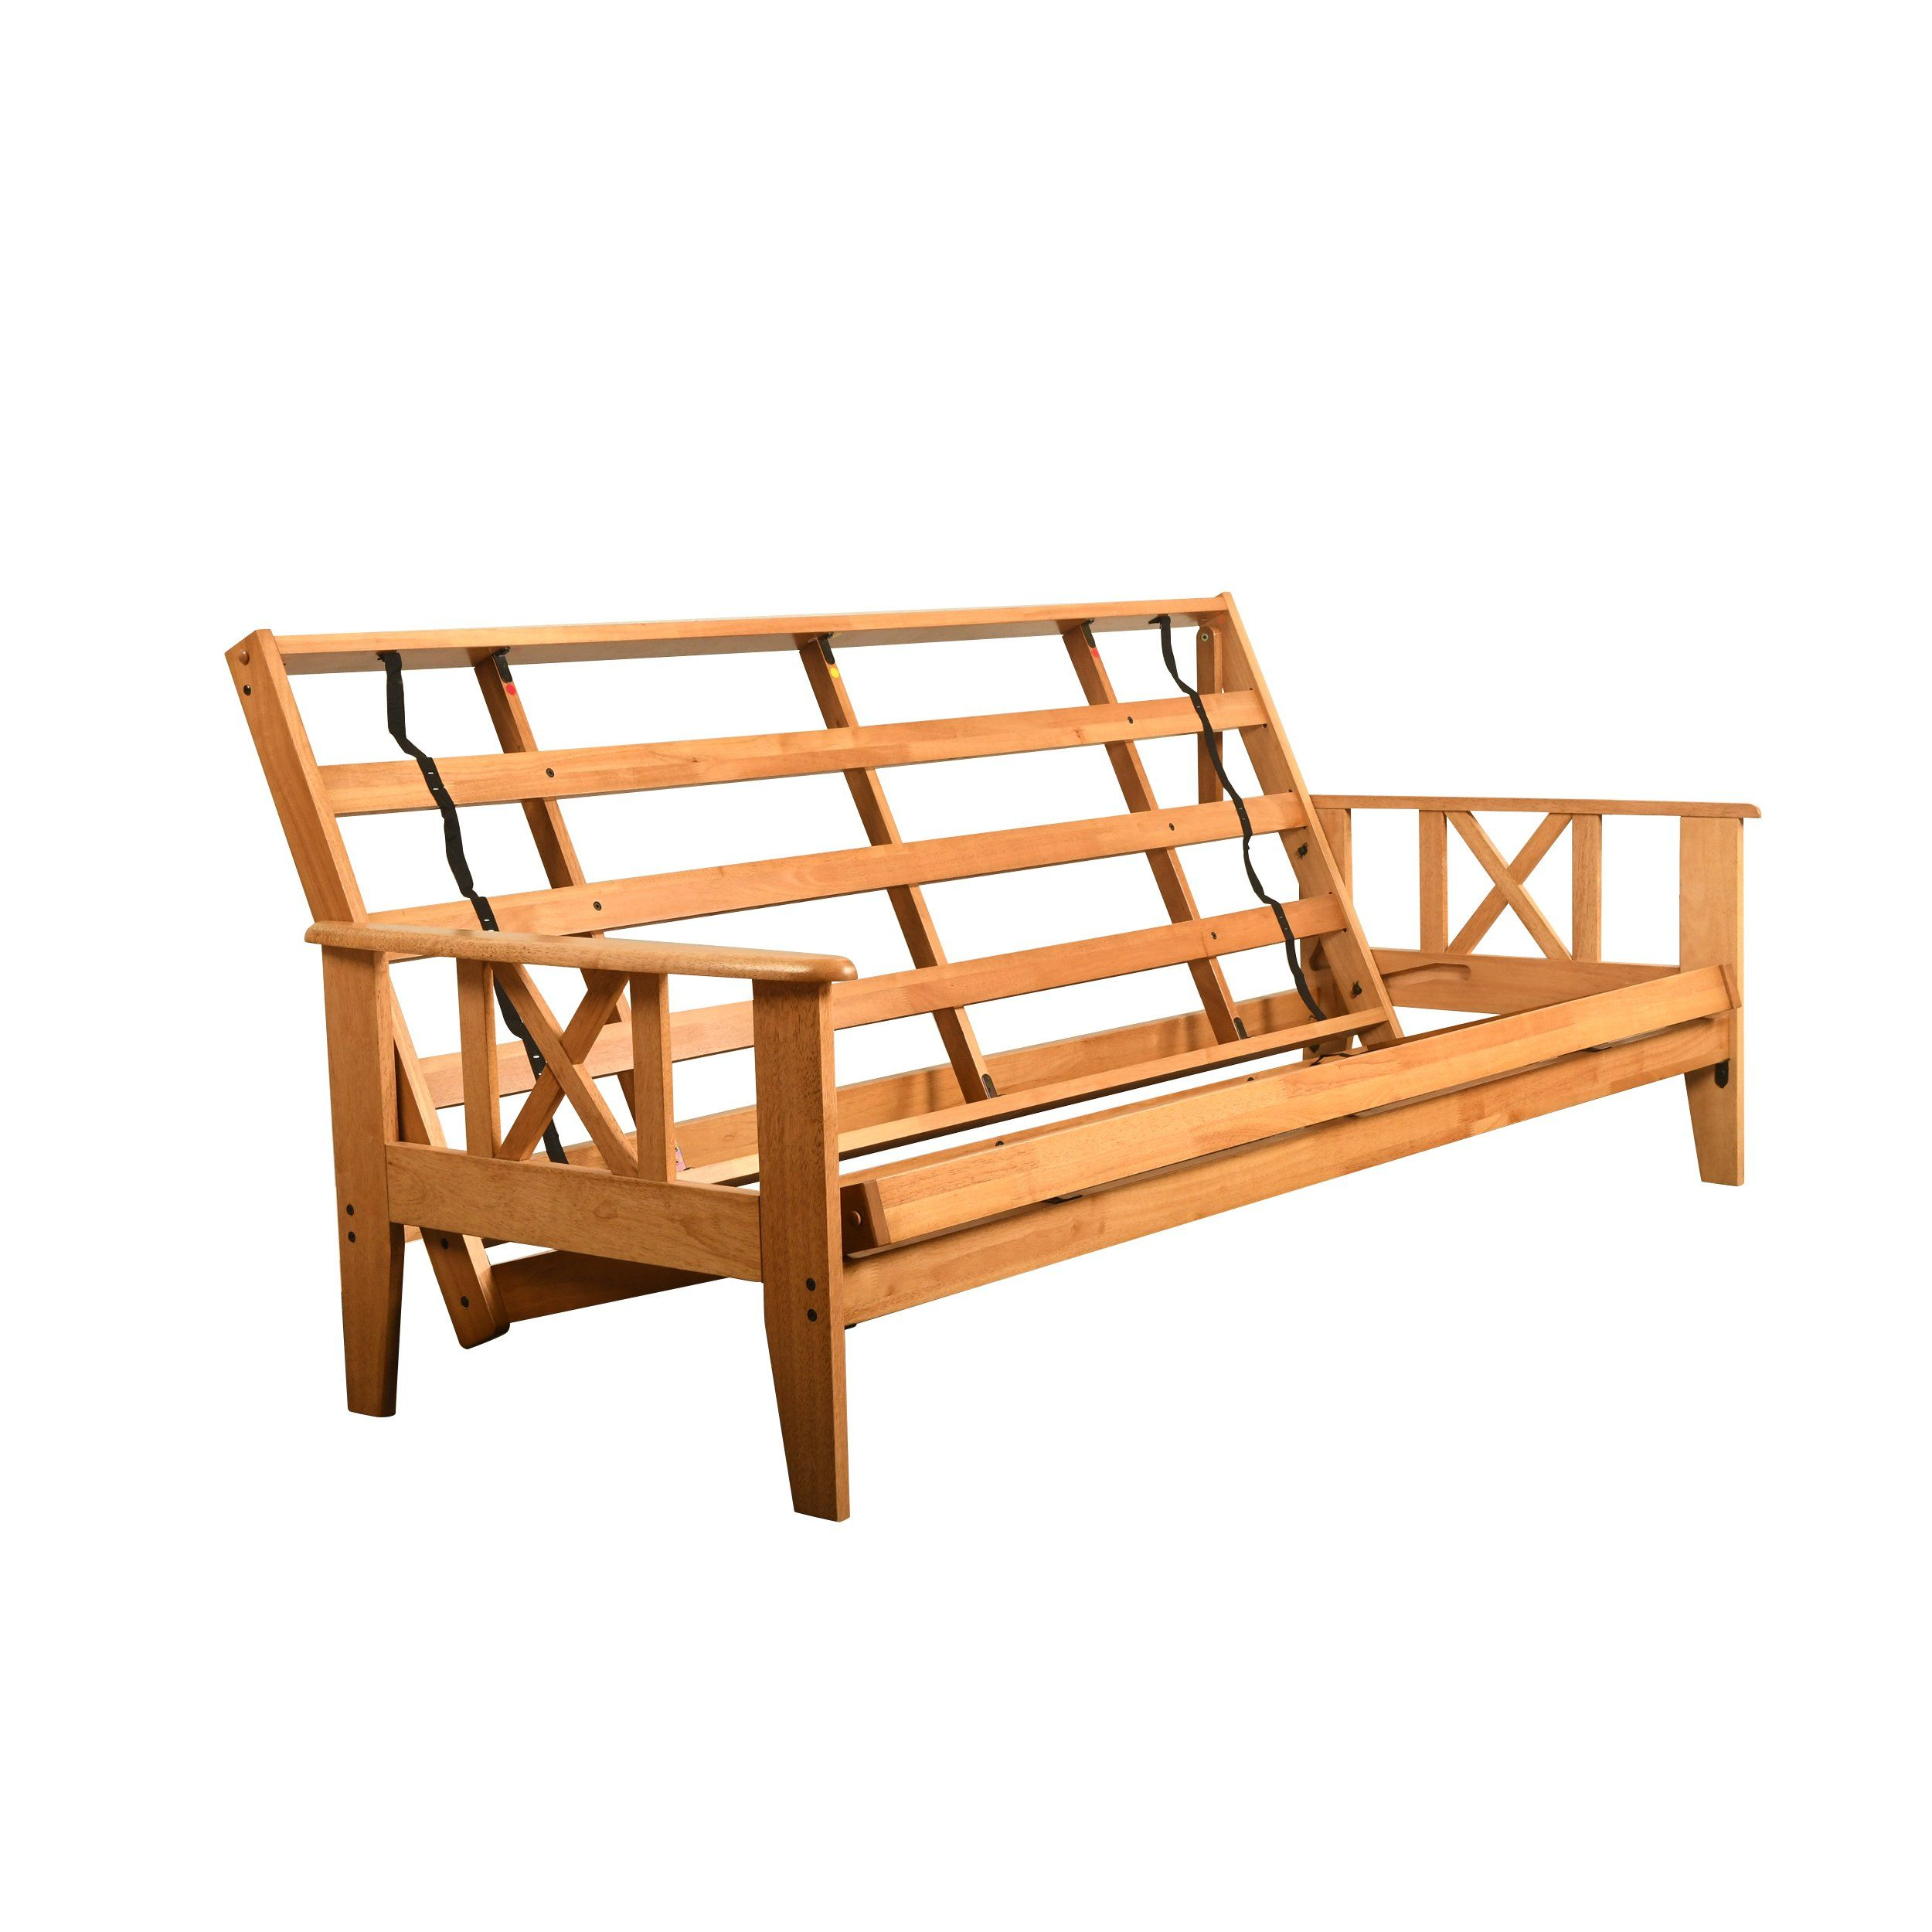 Excelsior Honey Wood Futon Set Frame And Mattress Choice To Add Drawer Set Popular Color Spectrum Fabrics Frame And Ma Futon Frame Futon Sets Mattress Frame Wooden futon frame and mattress set